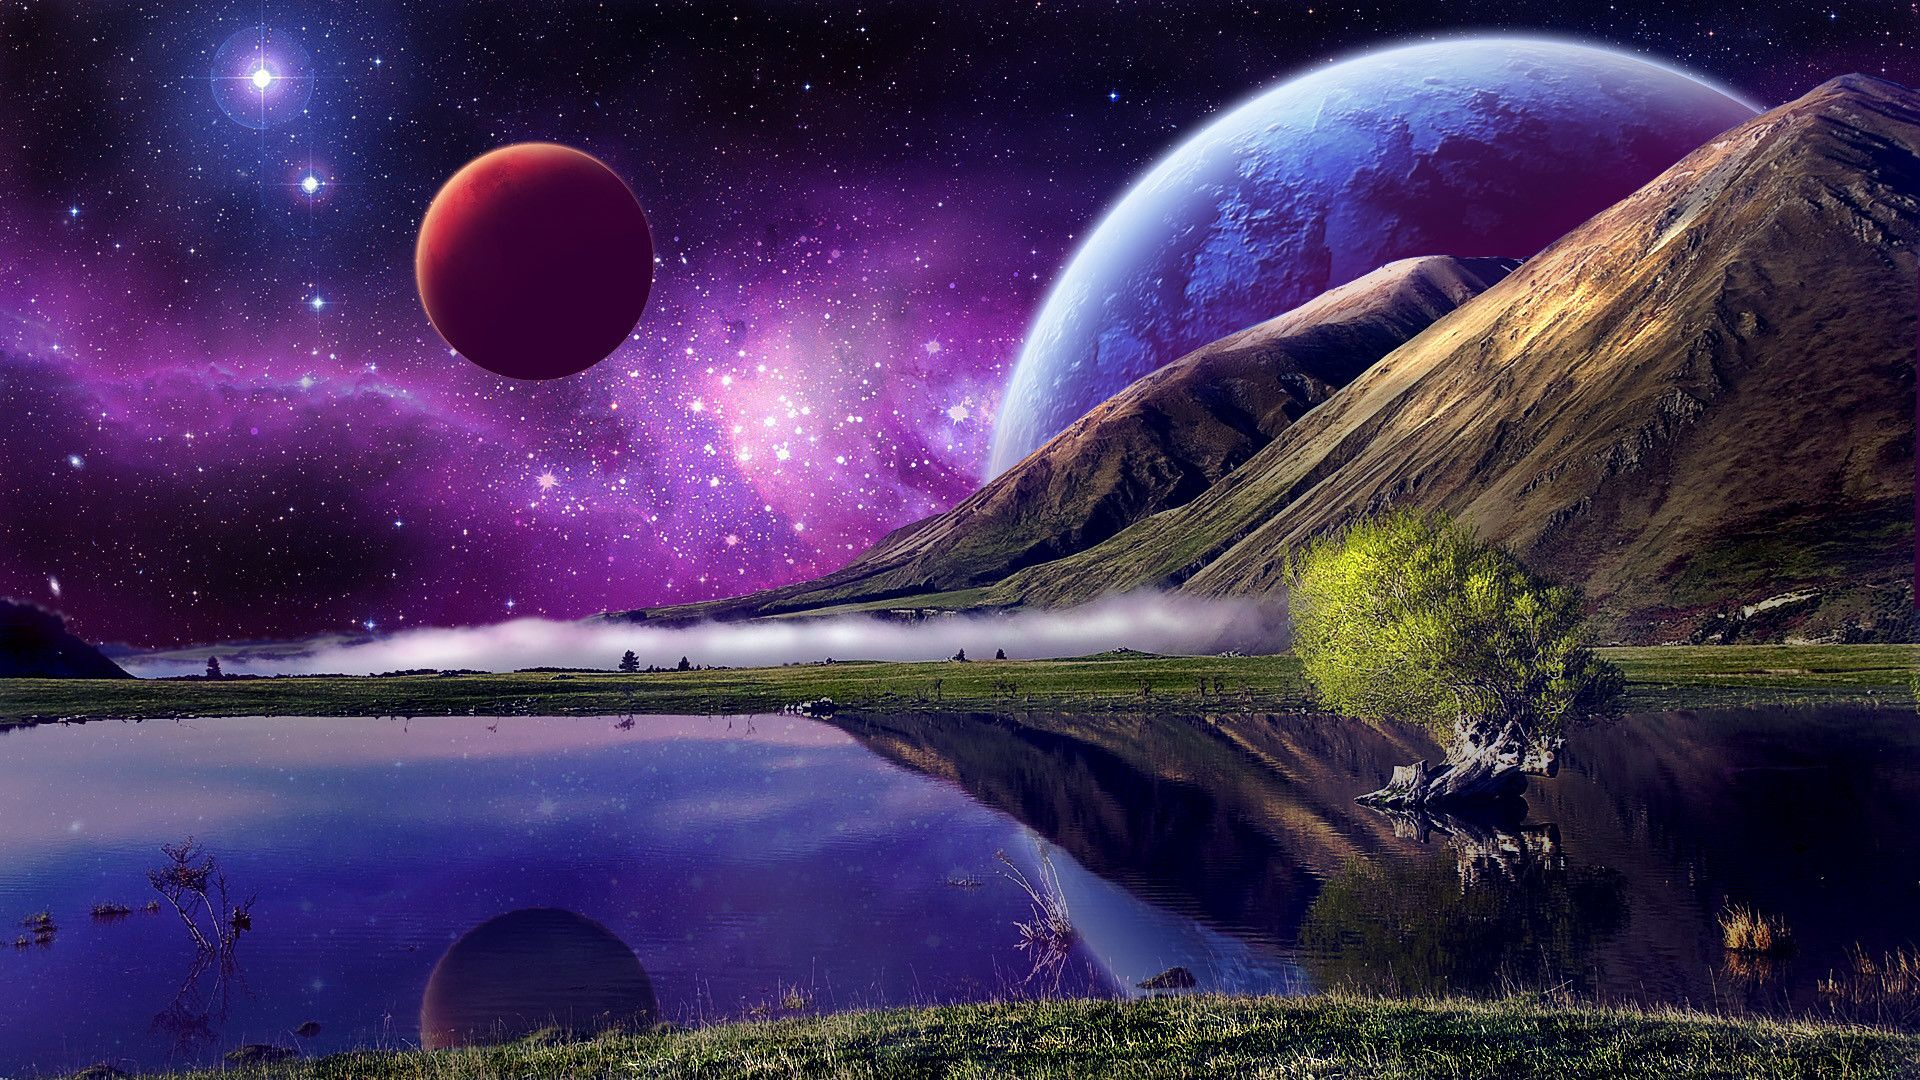 1920x1080 Epic Space Wallpapers hd 1080p Epic Space Background hd 1920x1080